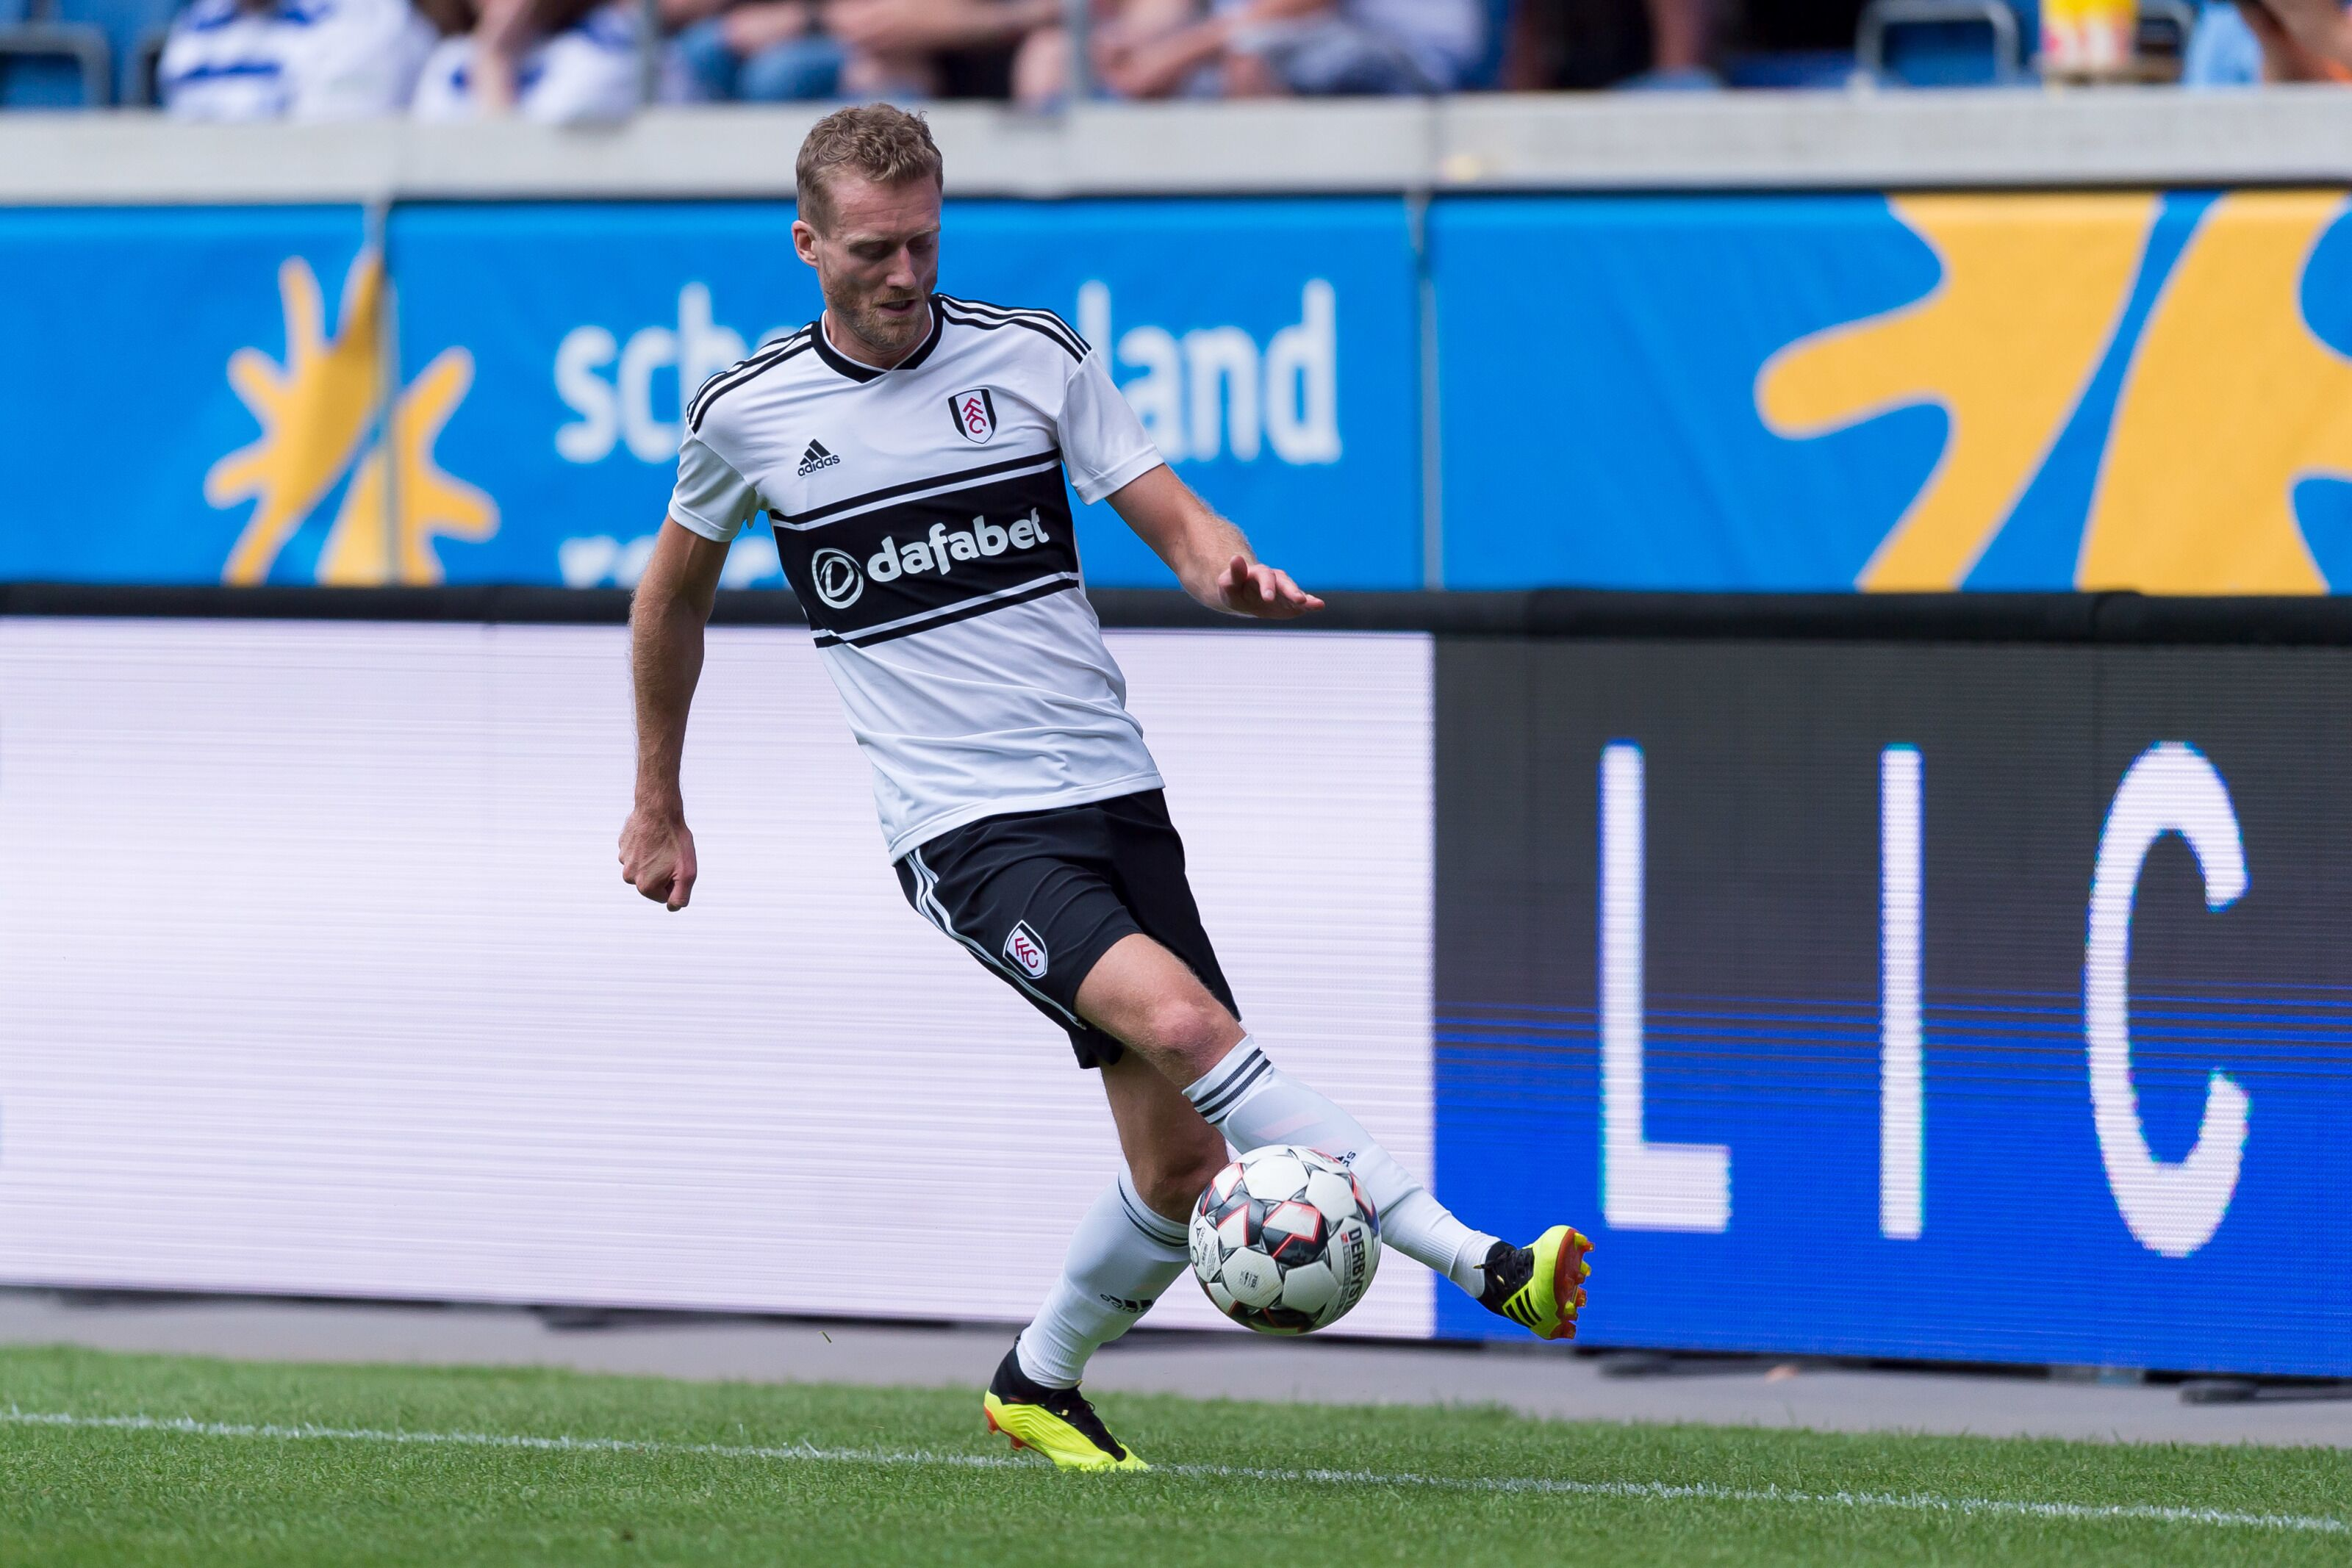 DUISBURG, GERMANY - JULY 28: Andre Schuerrle of AC Florenz controls the ball during the Cup der Traditionen match between FC Fulham and AC Florenz on July 28, 2018 in Duisburg, Germany. (Photo by TF-Images/Getty Images)